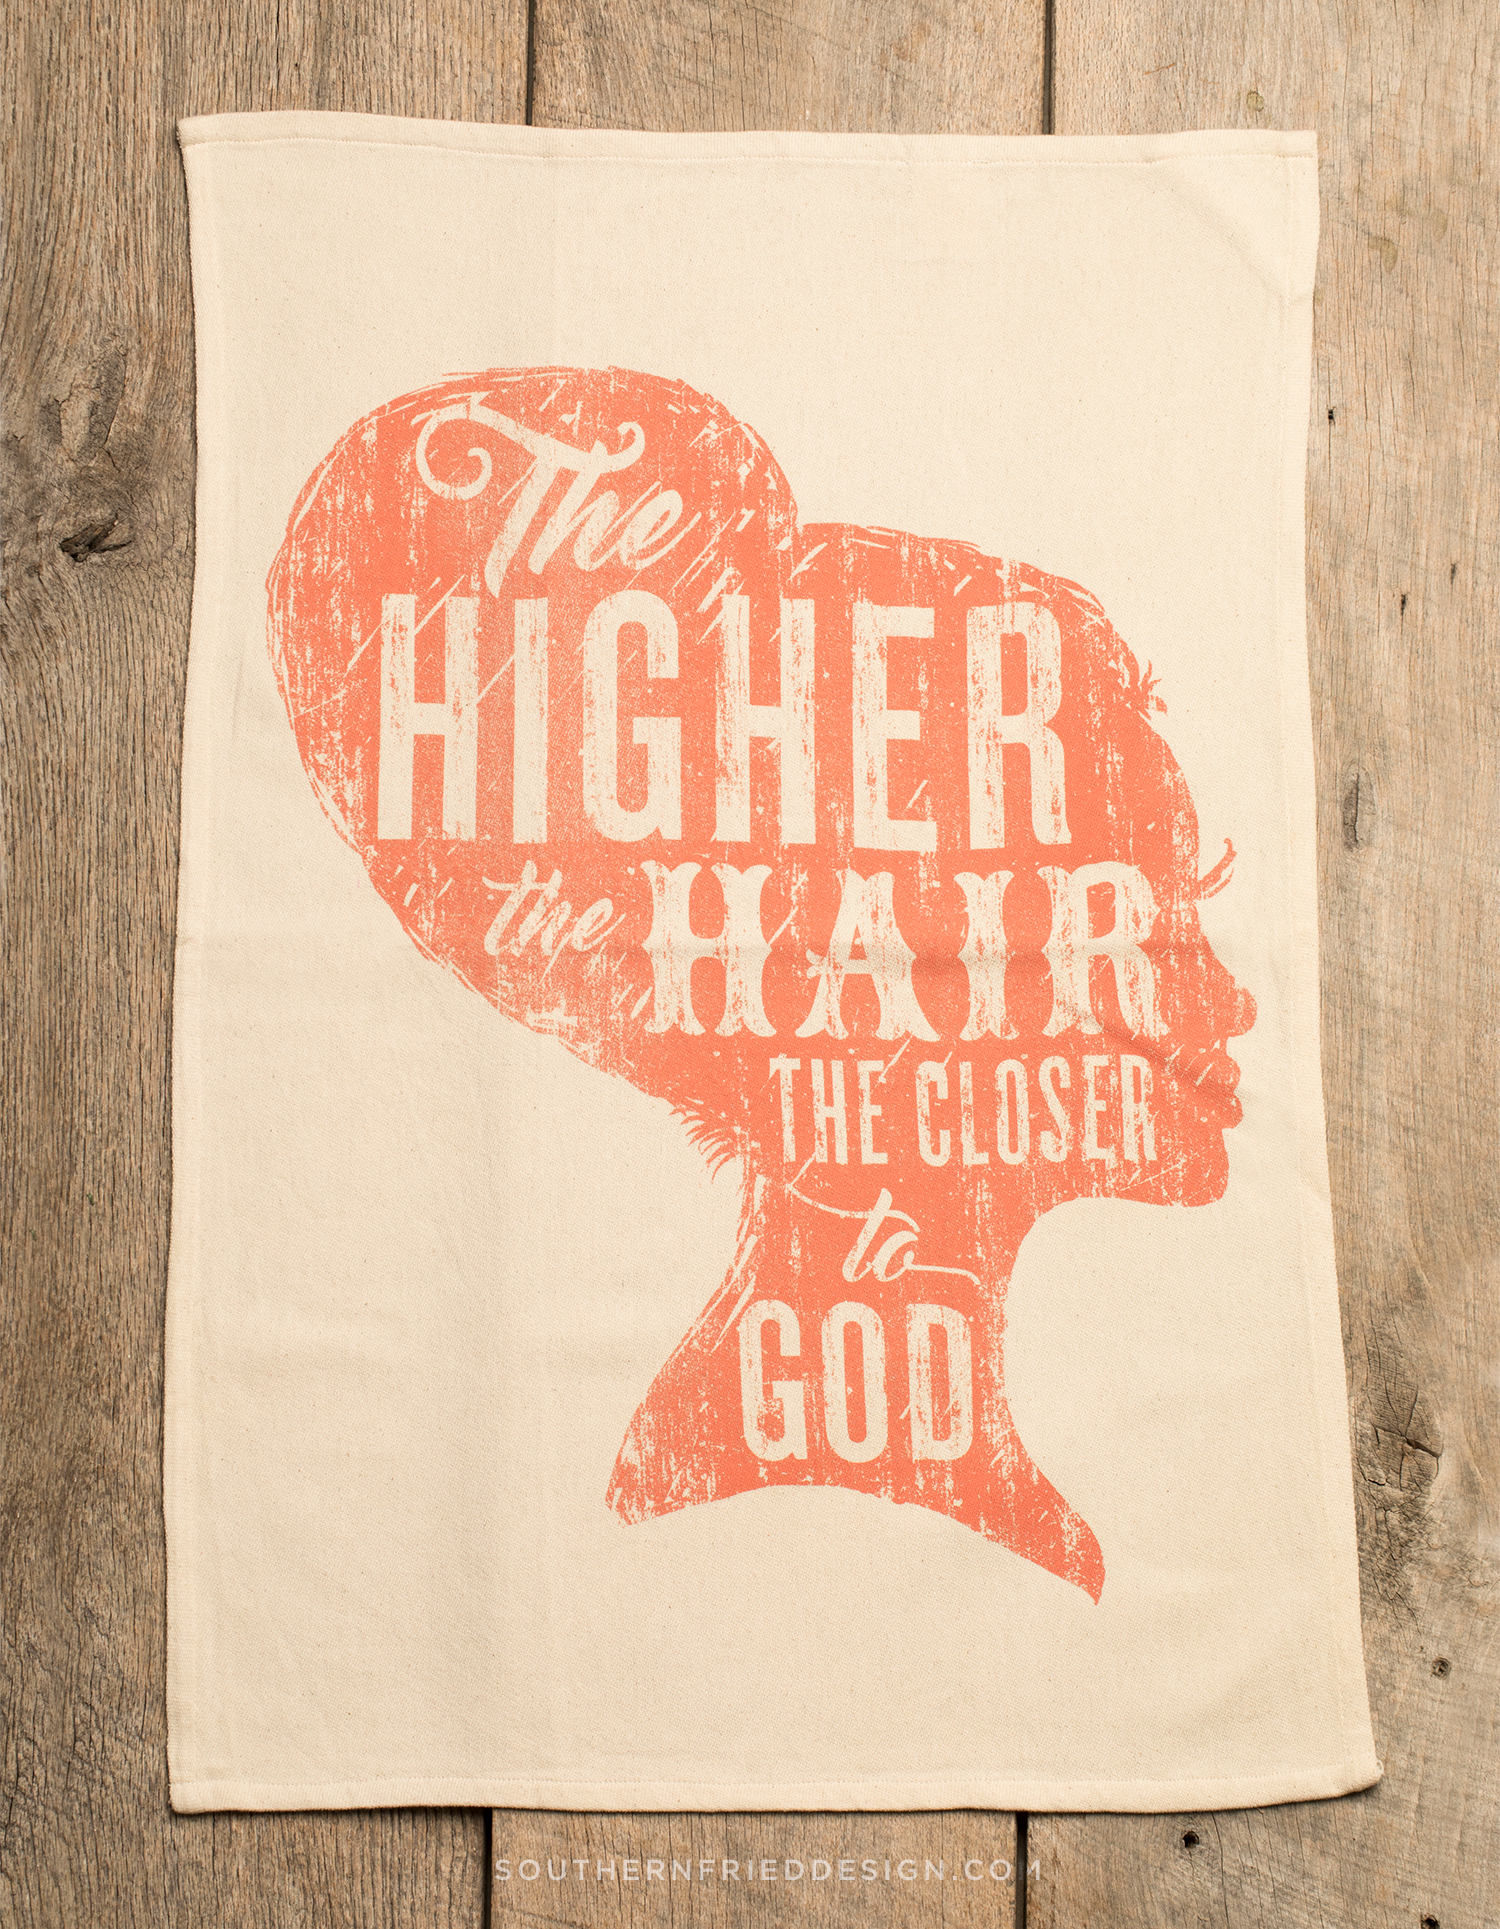 amy kinslow southern fried design barn higher the hair